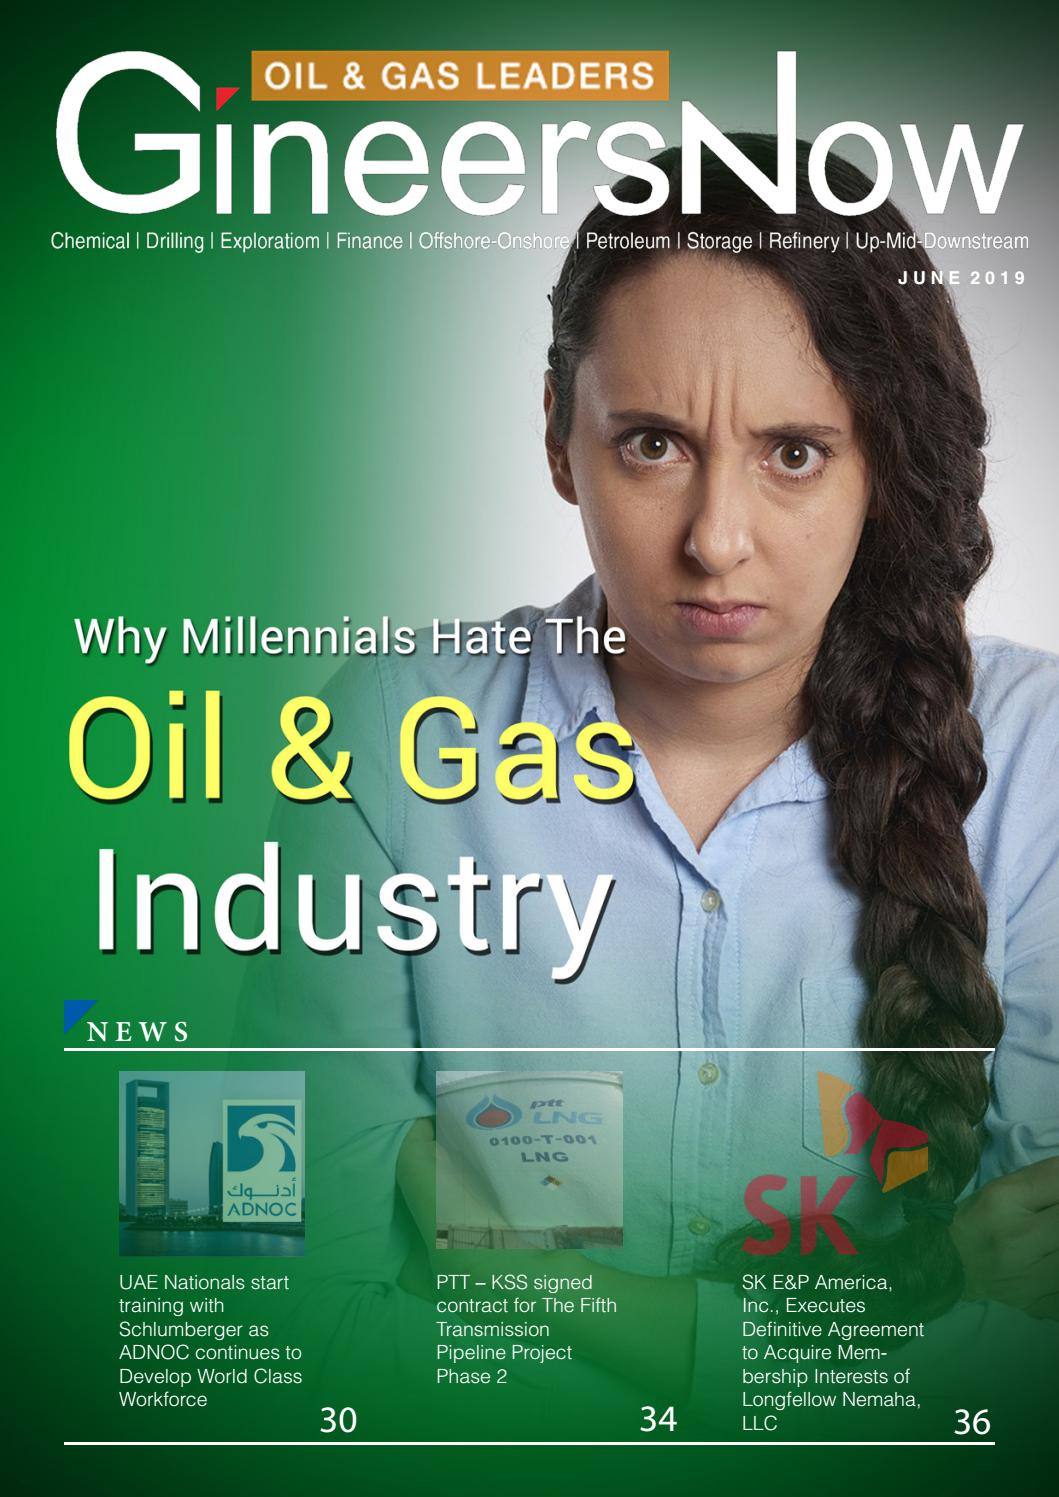 Why Millennials Hate The Petroleum Industry, Oil & Gas